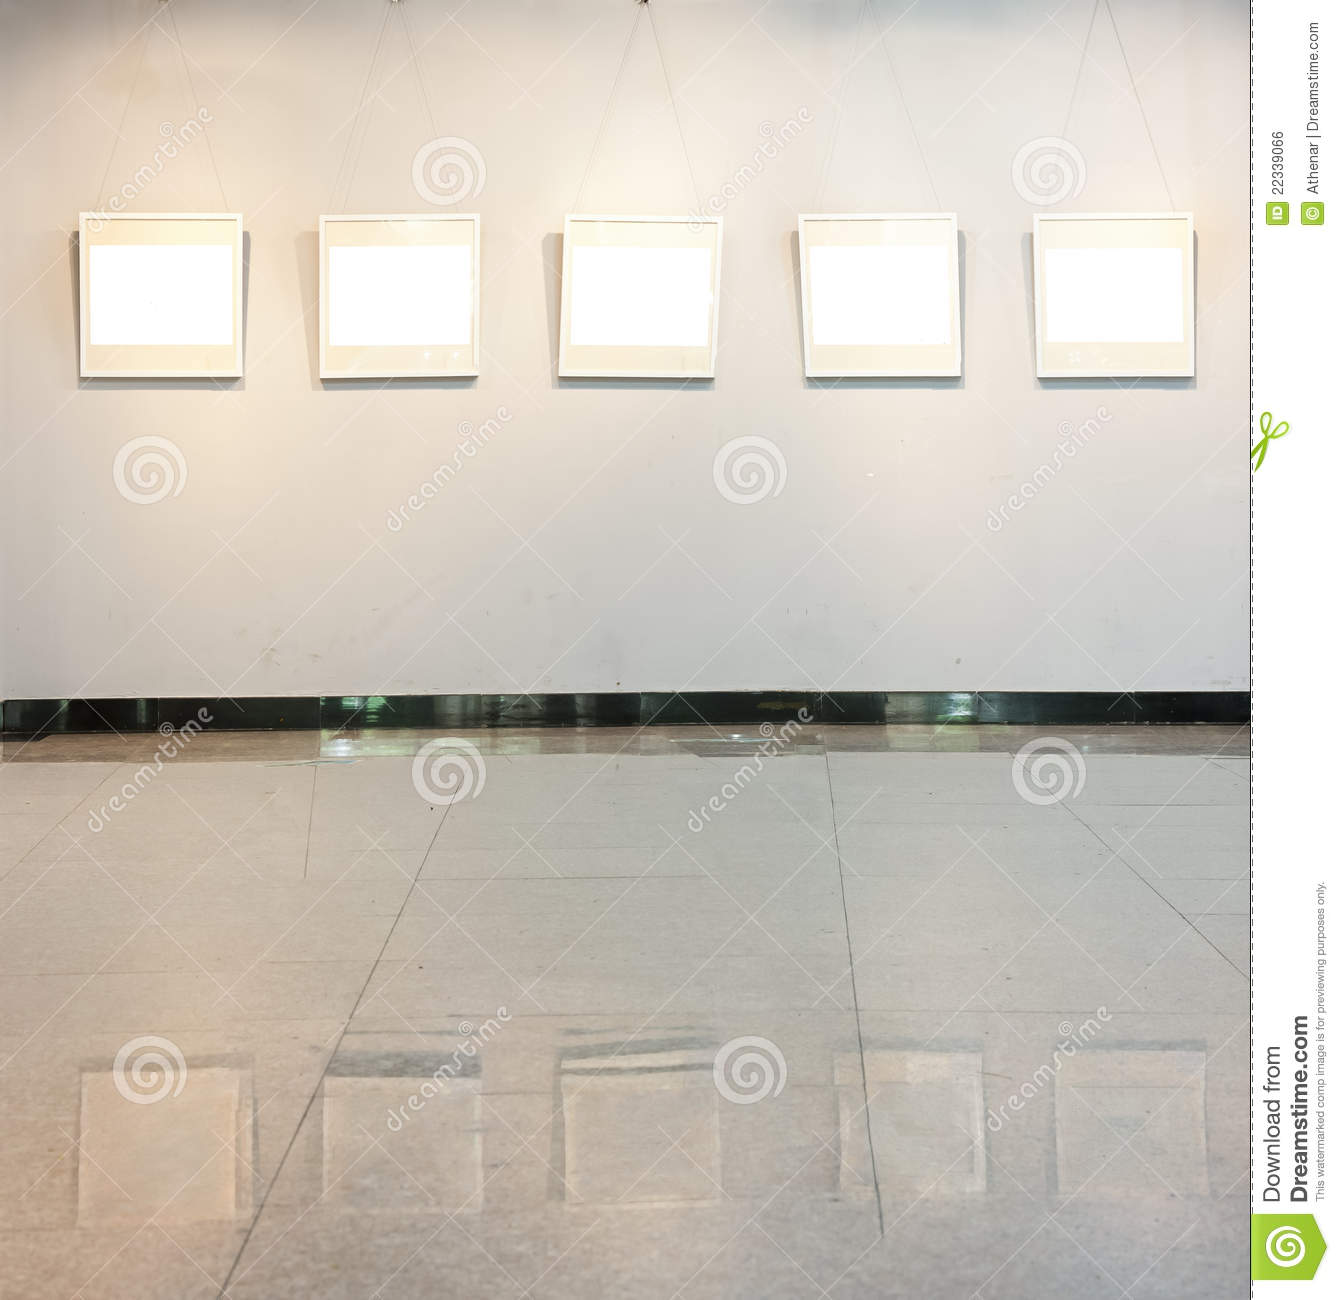 Royalty free stock image blank frame on the wall at art gallery